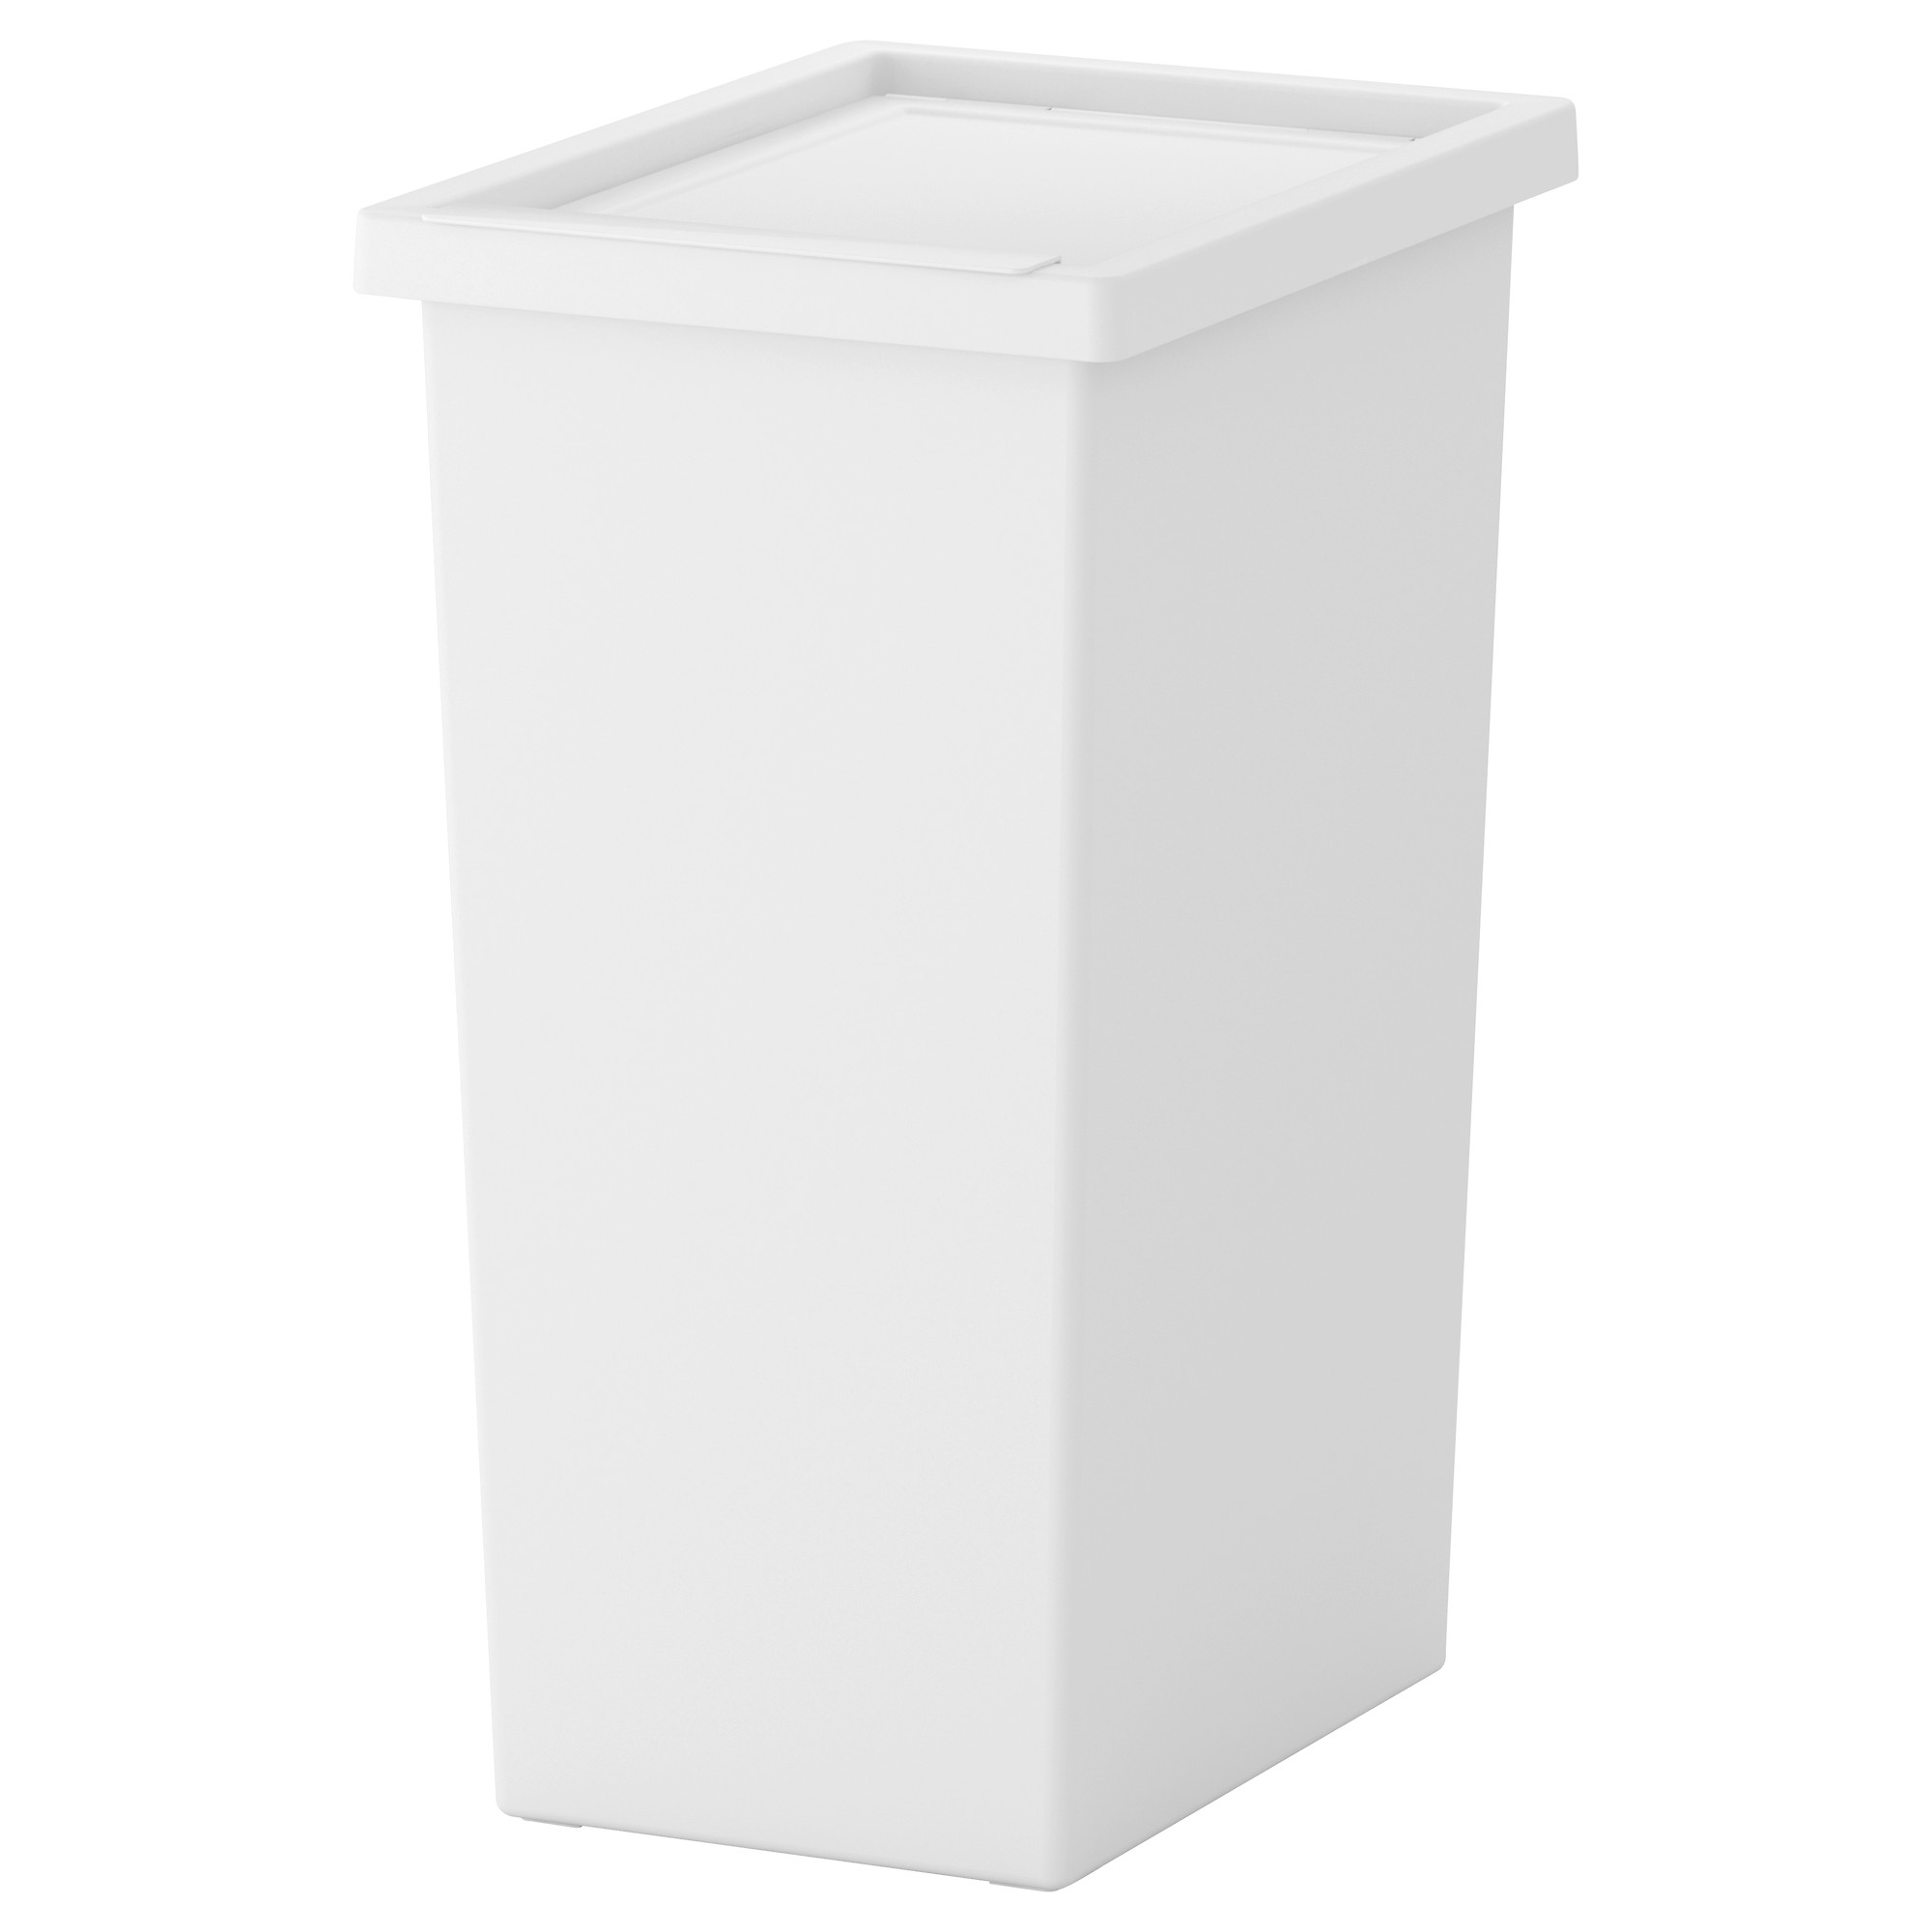 Ikea Kitchen Waste Bins